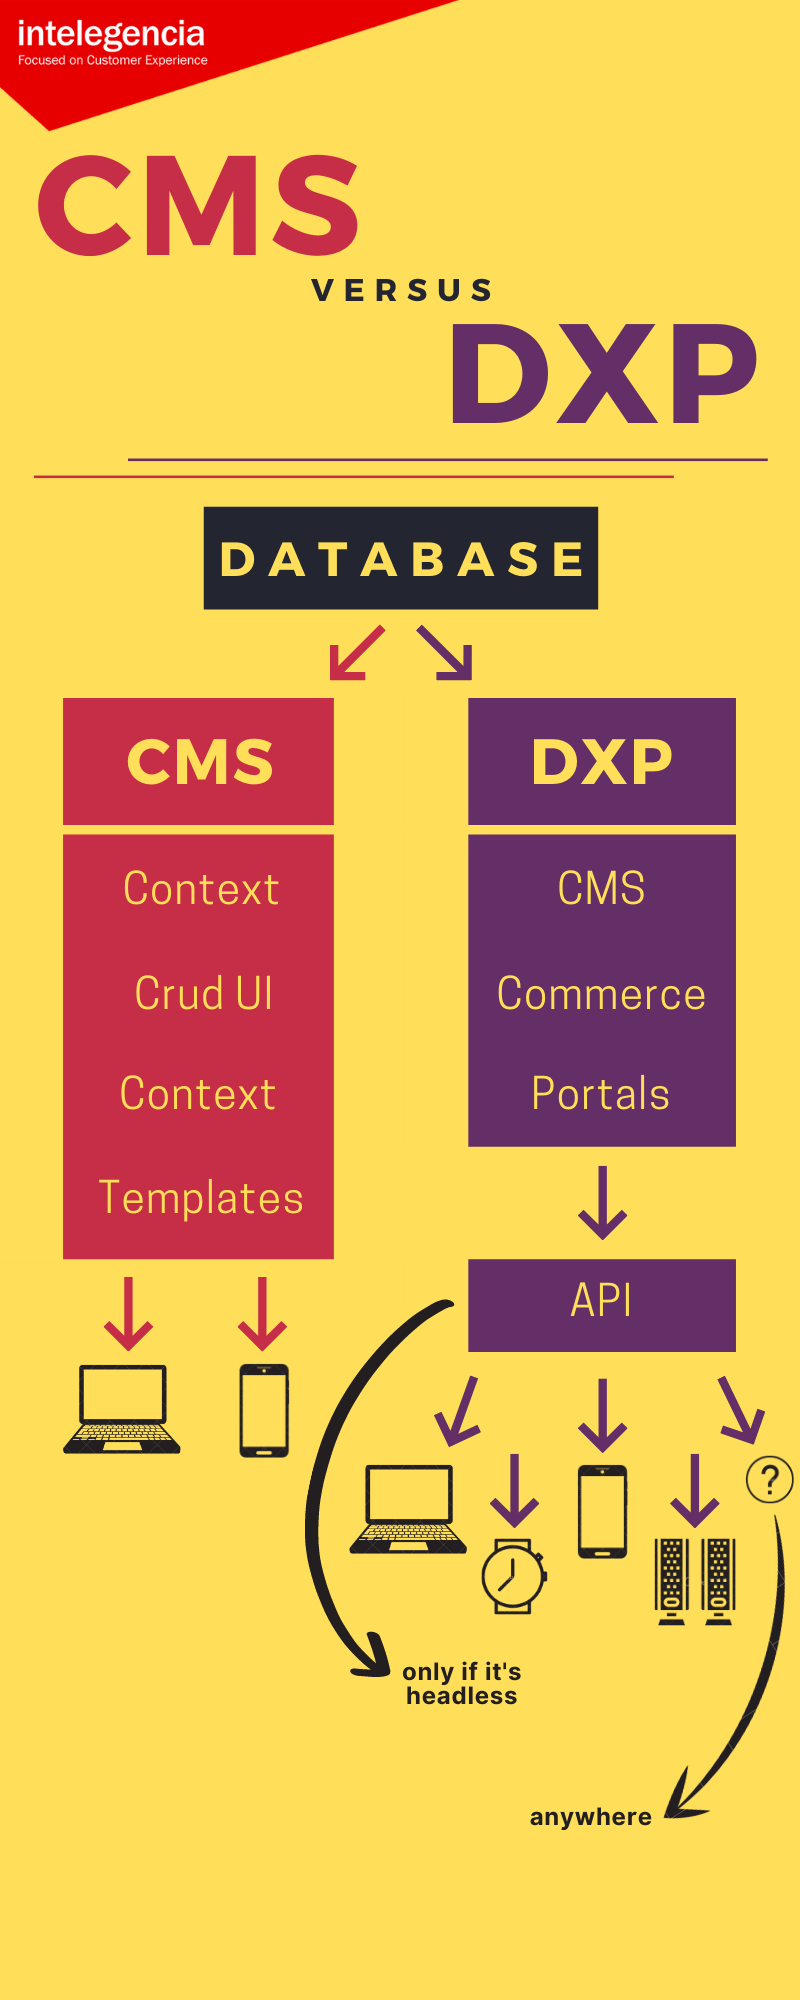 The differences between CMS and DXP platforms.